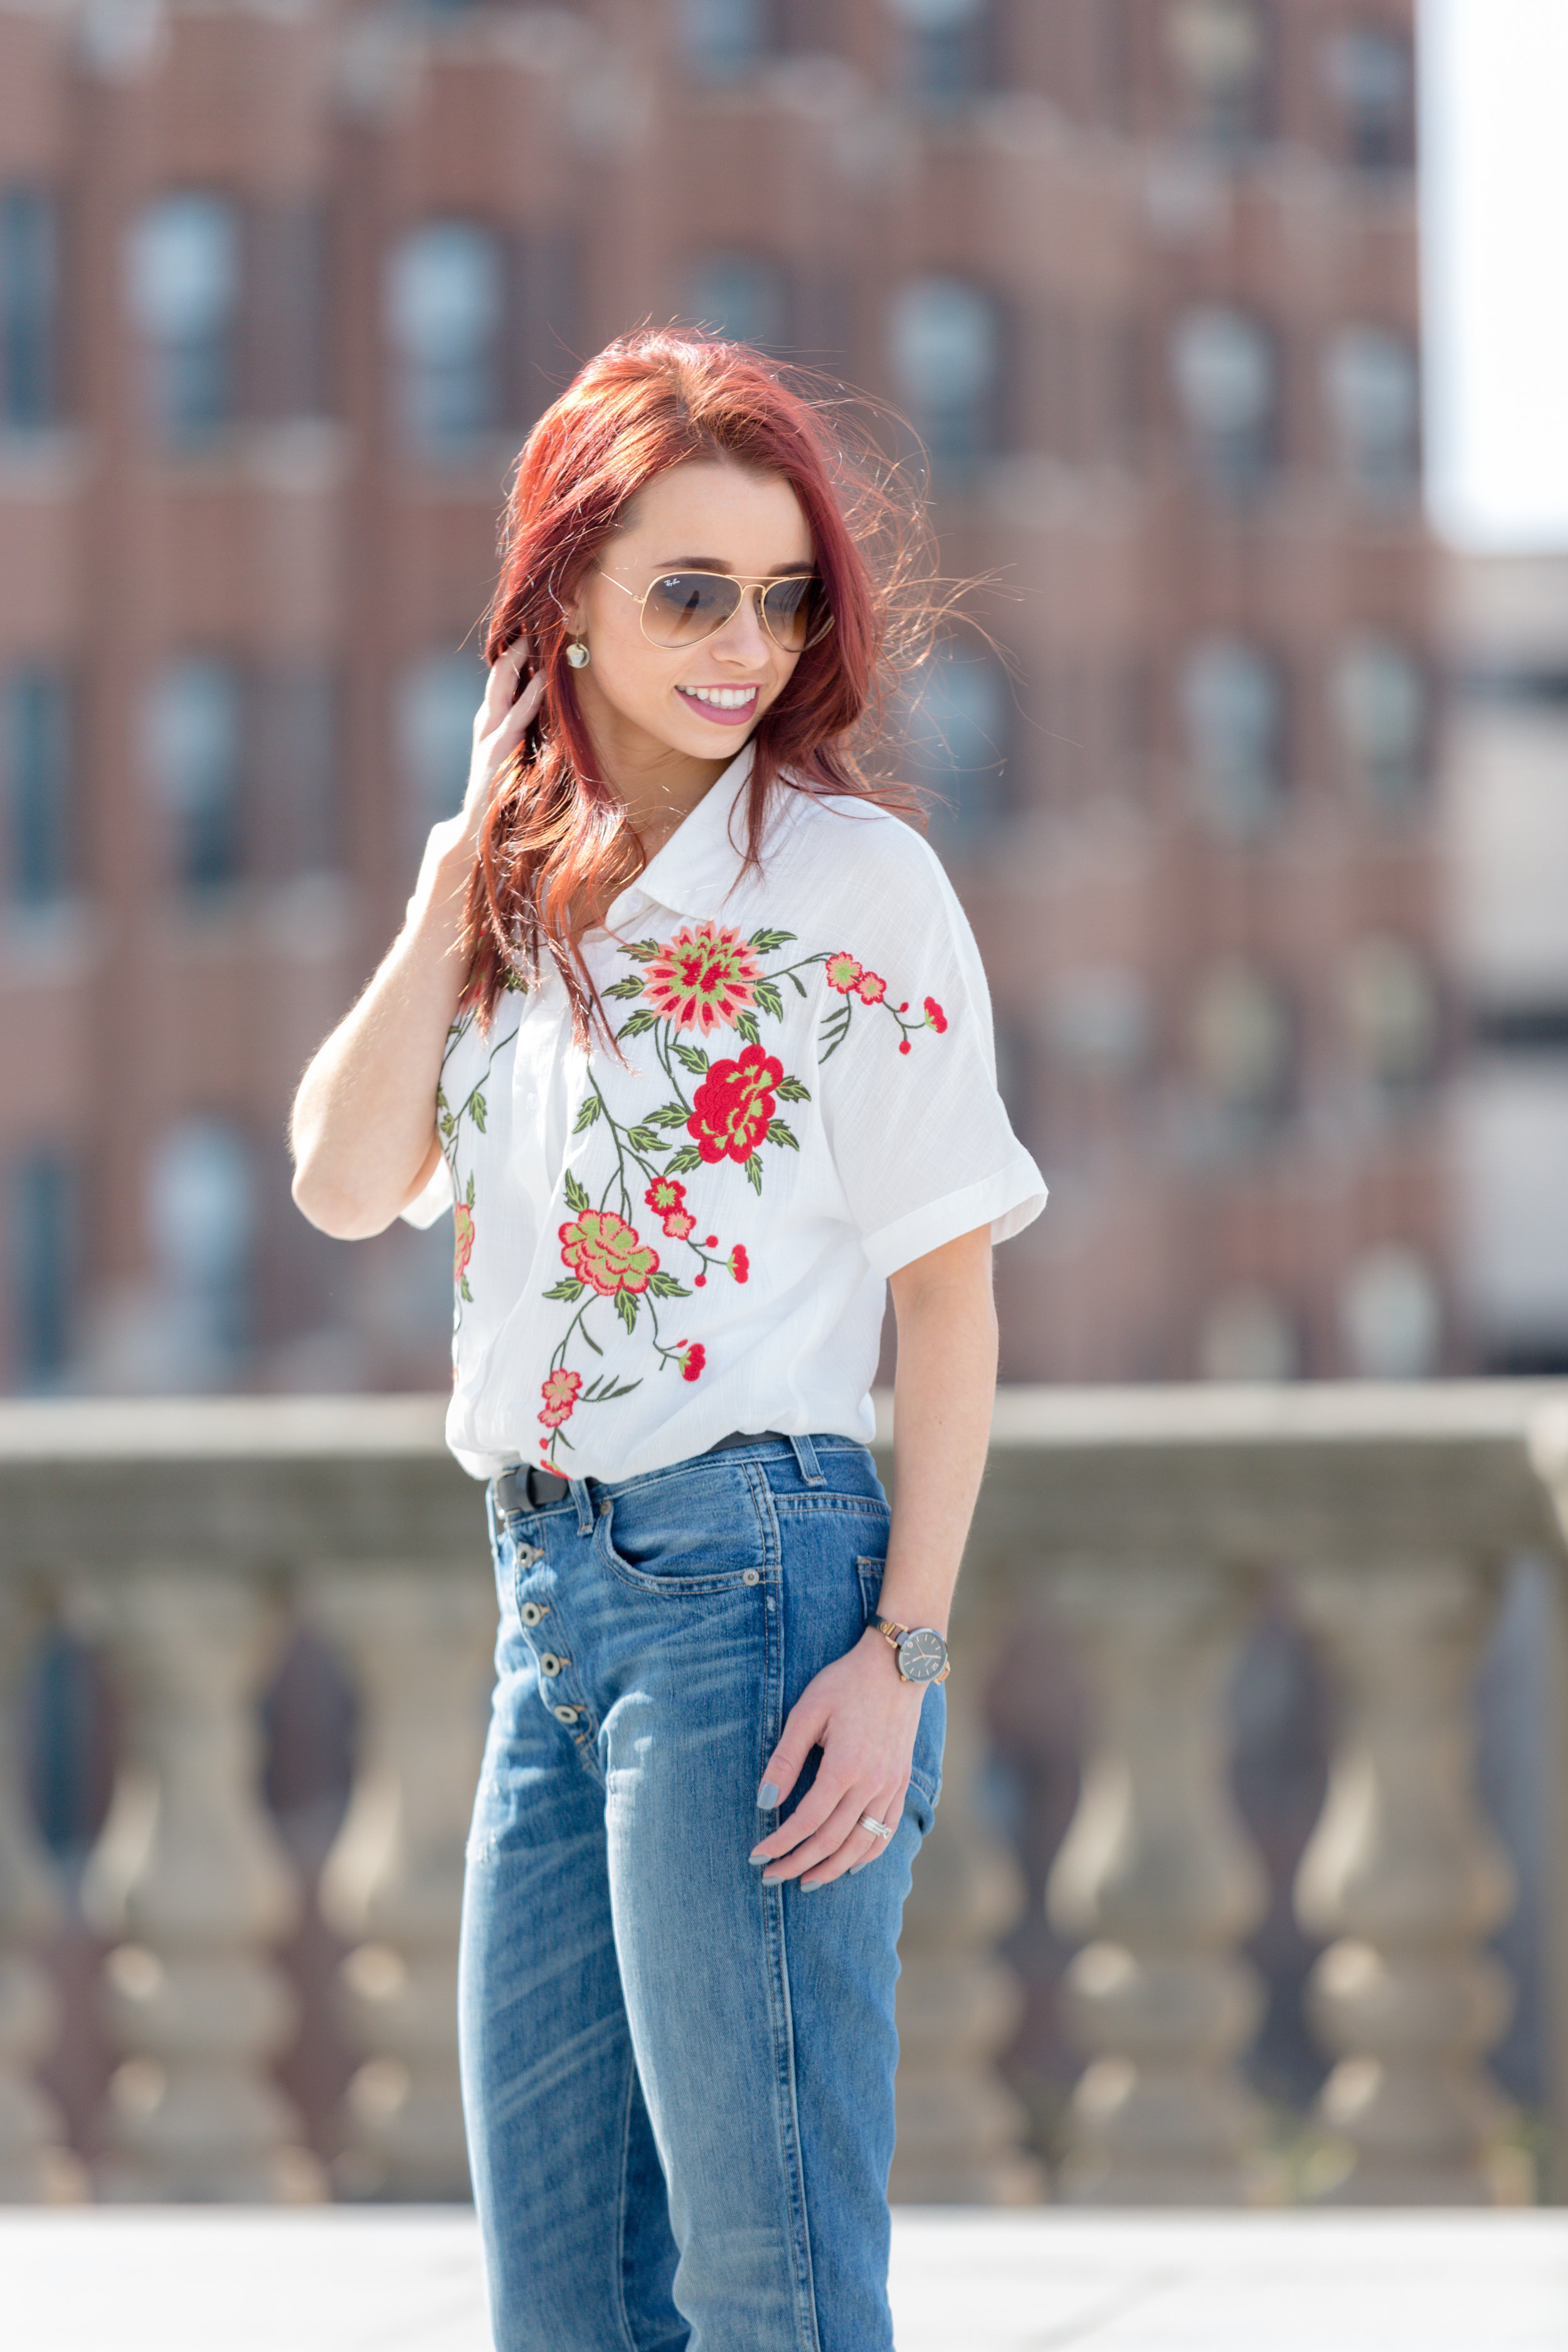 Embroidered Top,  RaeLynn's Boutique (use code TRENDY15 for 15% off) || Tomboy Jeans,  Lucky Brand  || Sunglasses,  Ray Ban Aviators  || Peep Toe Booties, DSW || Watch,  Fossil  || Bar Necklace,  Layered and Long